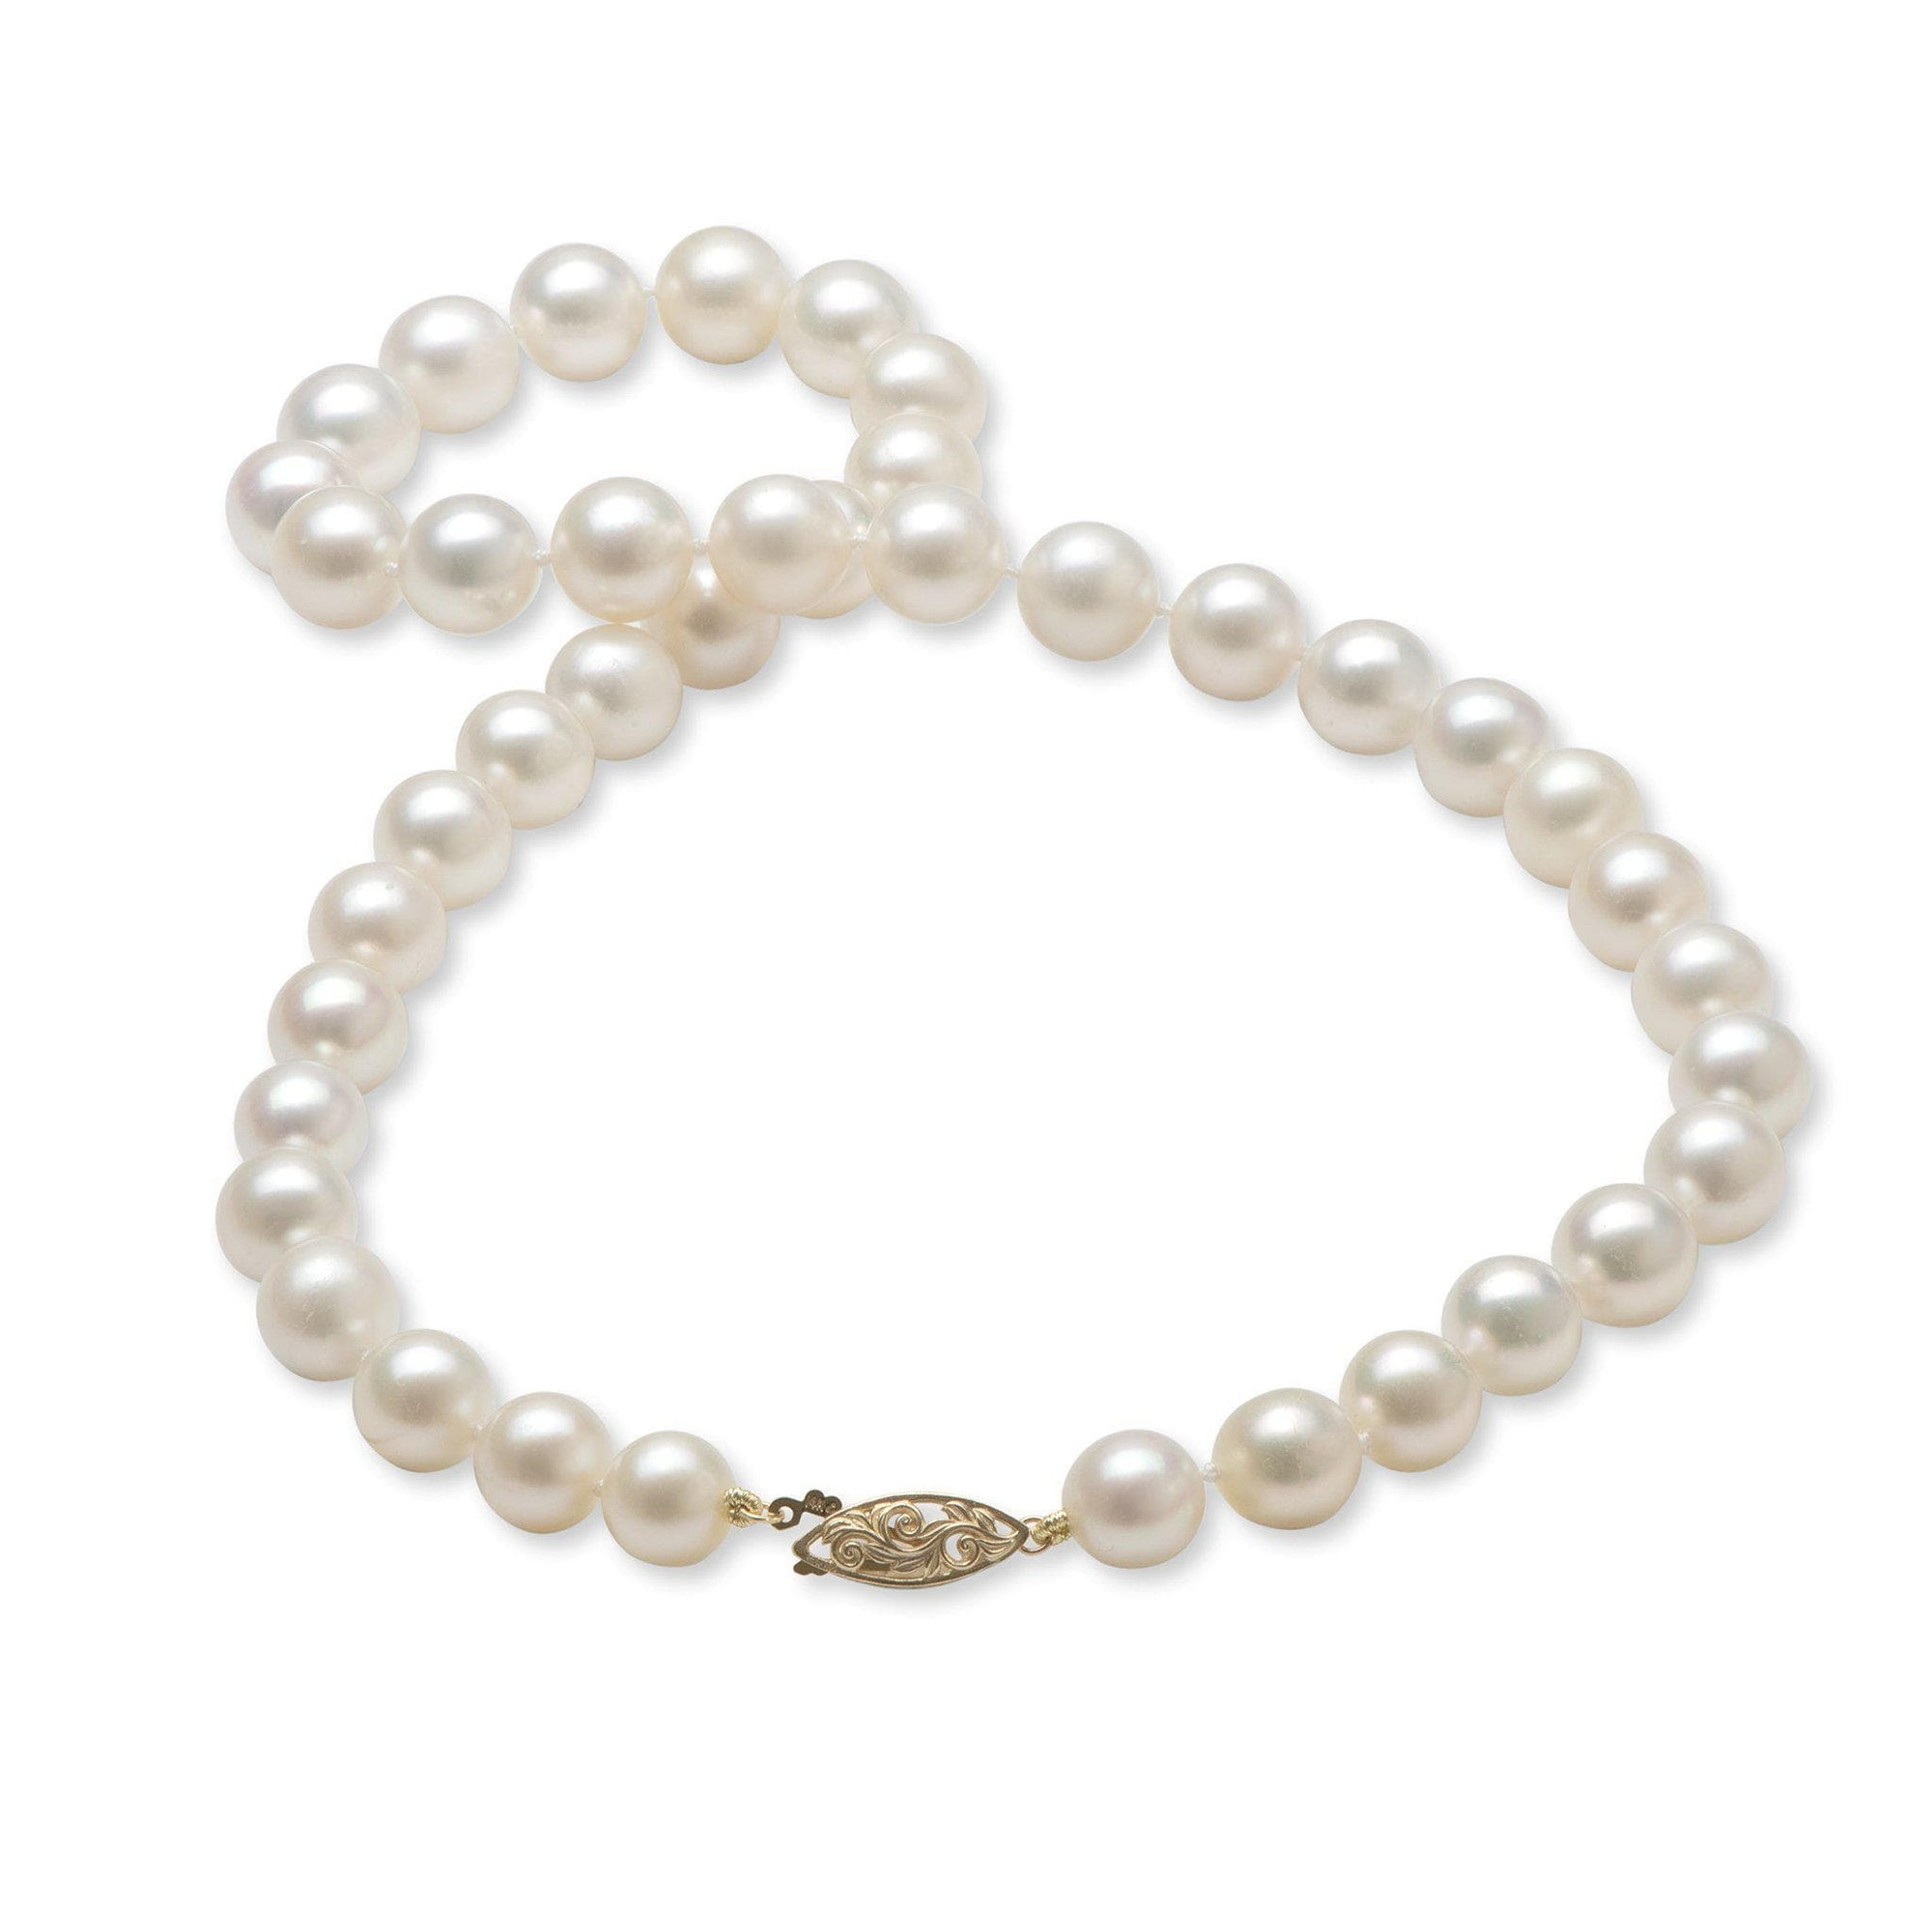 South Sea White Pearl (9-11mm) Strand in 14K Yellow Gold